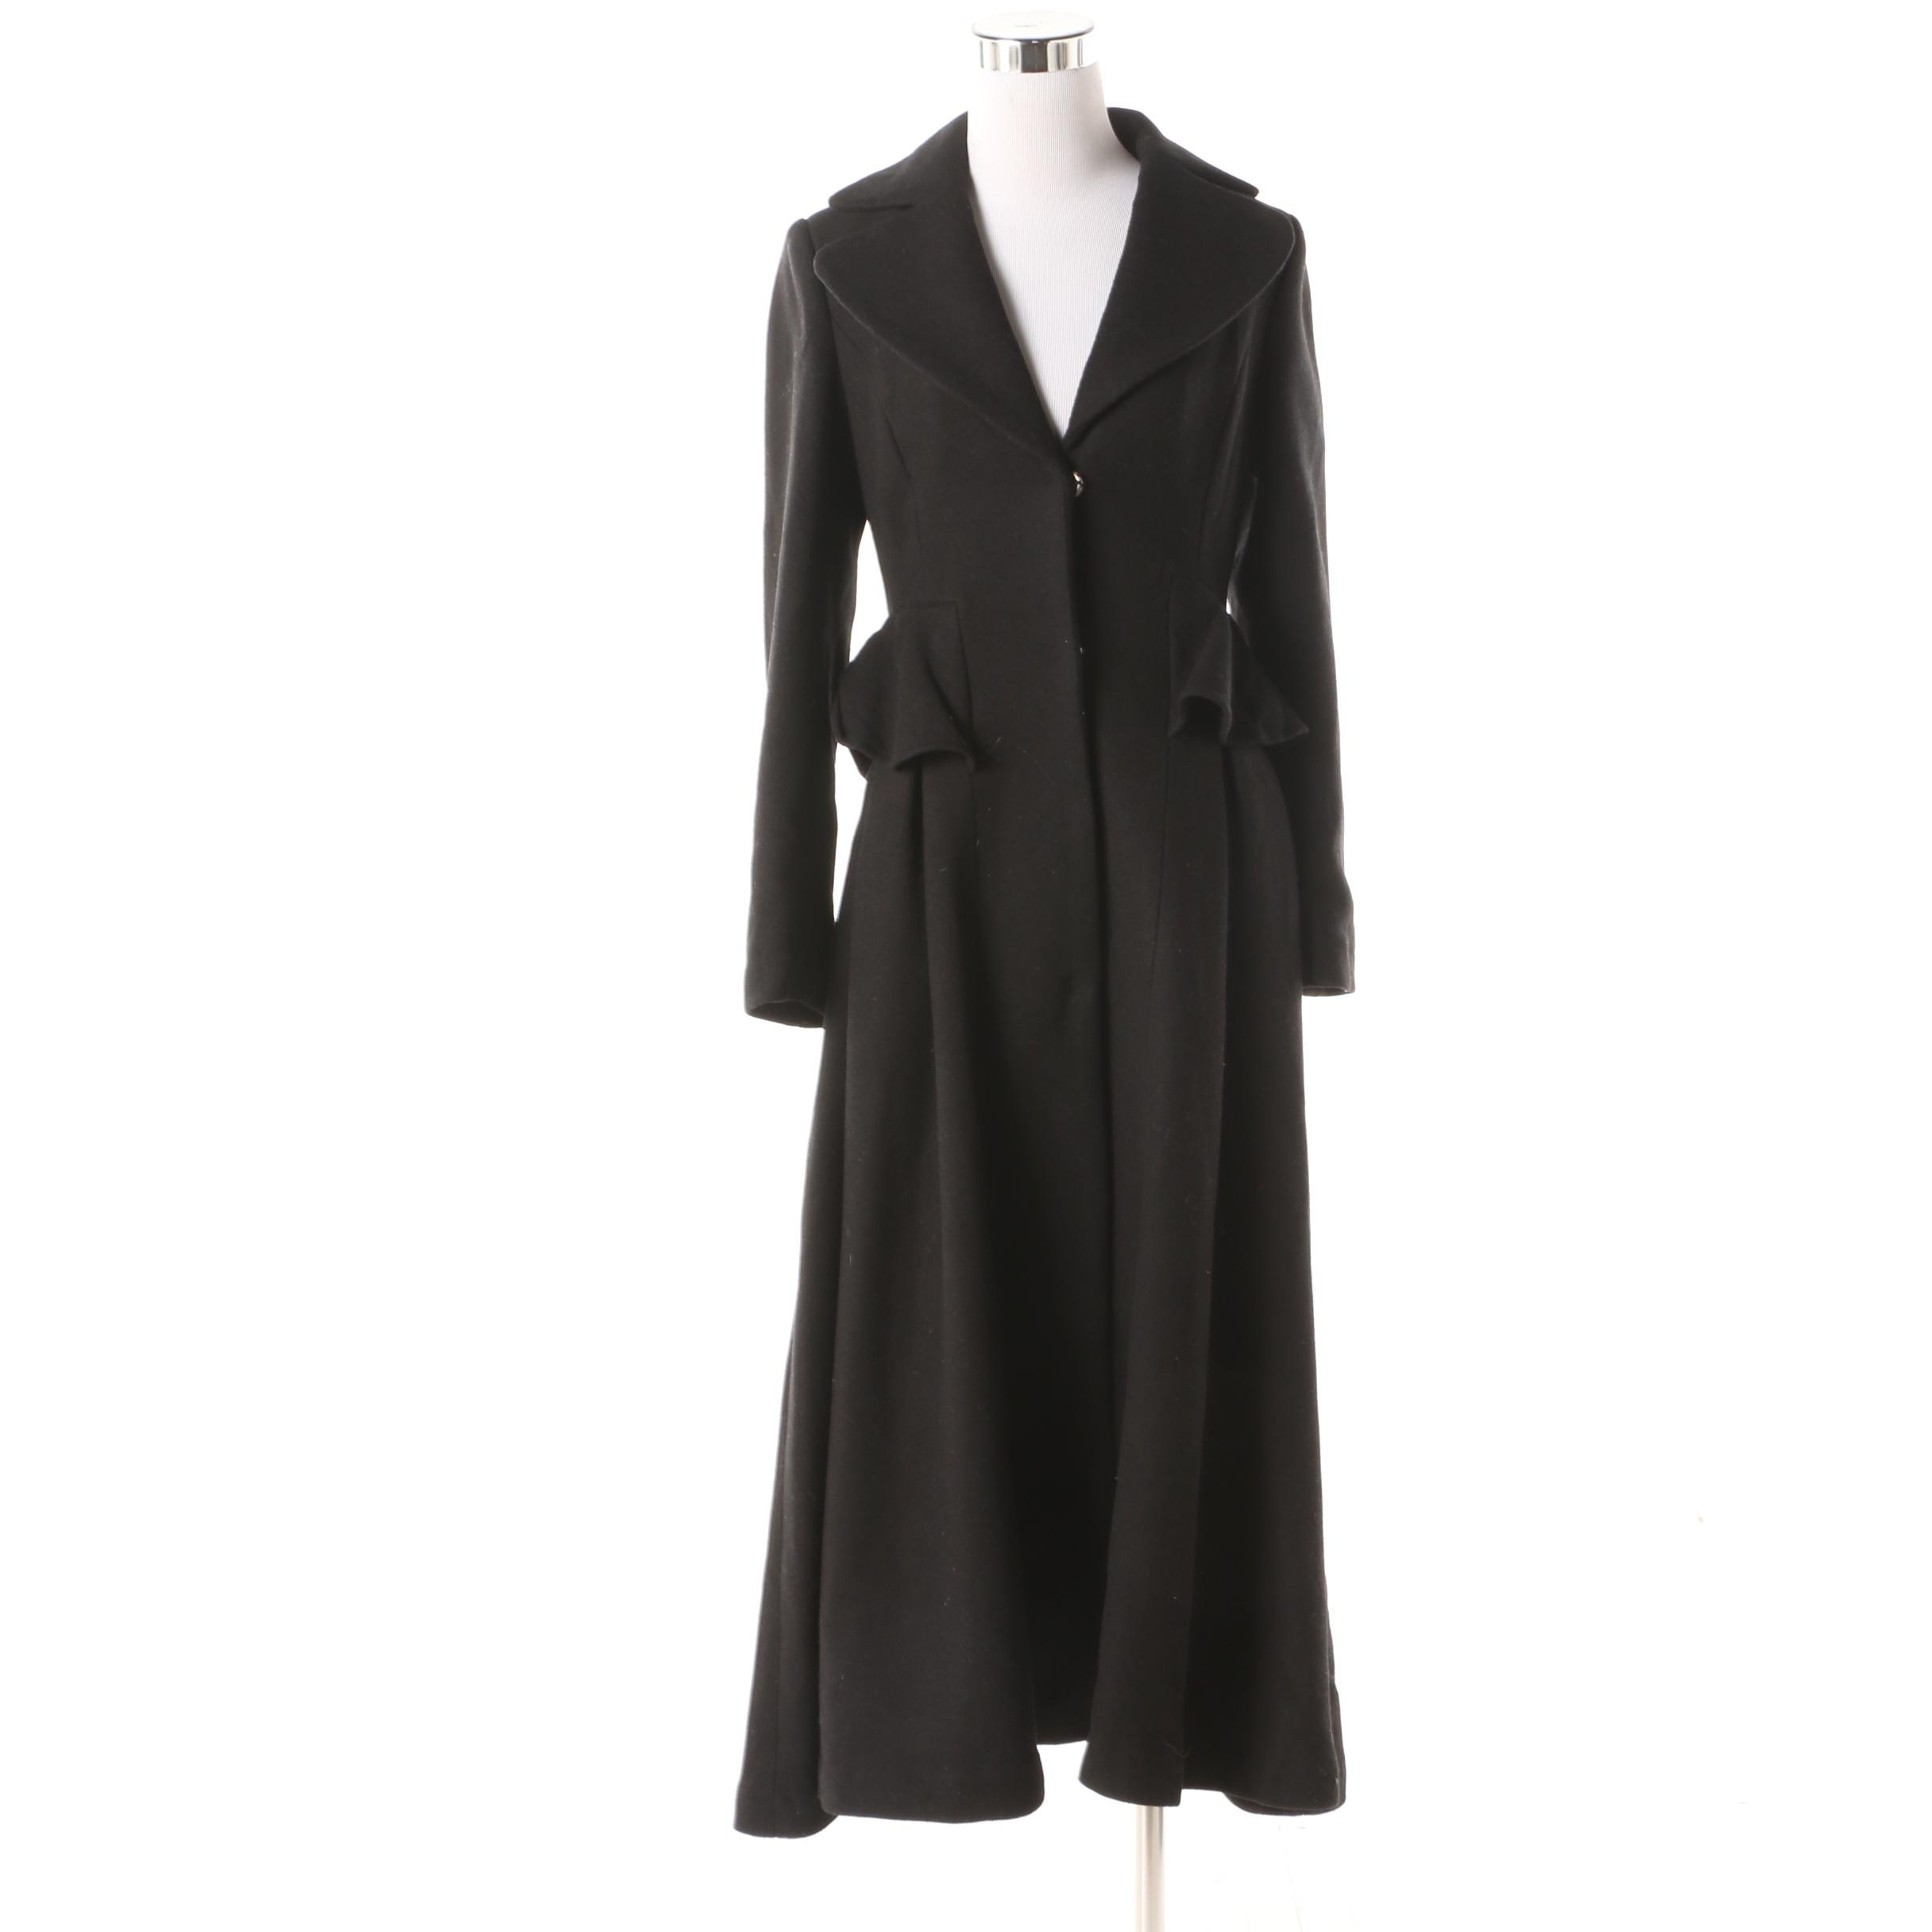 Women's Black Wool Blend Peplum Full-Length Coat